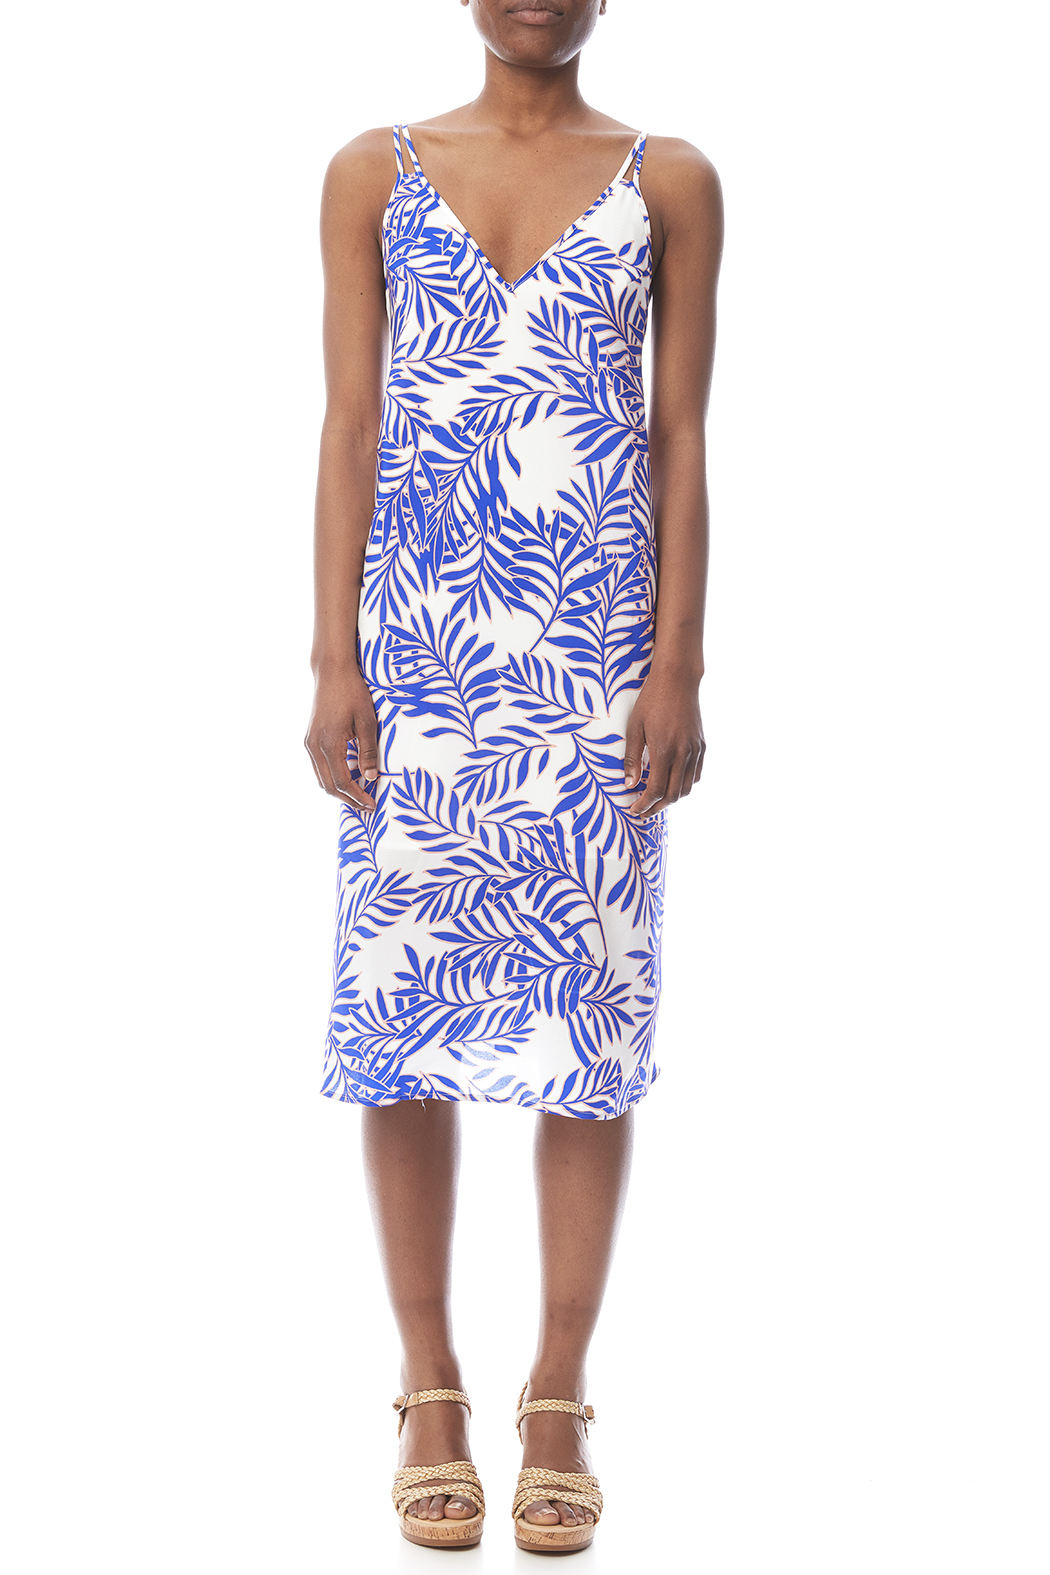 cf159f5795e0 Yumi Kim Silk Summer Breeze Dress from New York City by Olive and ...